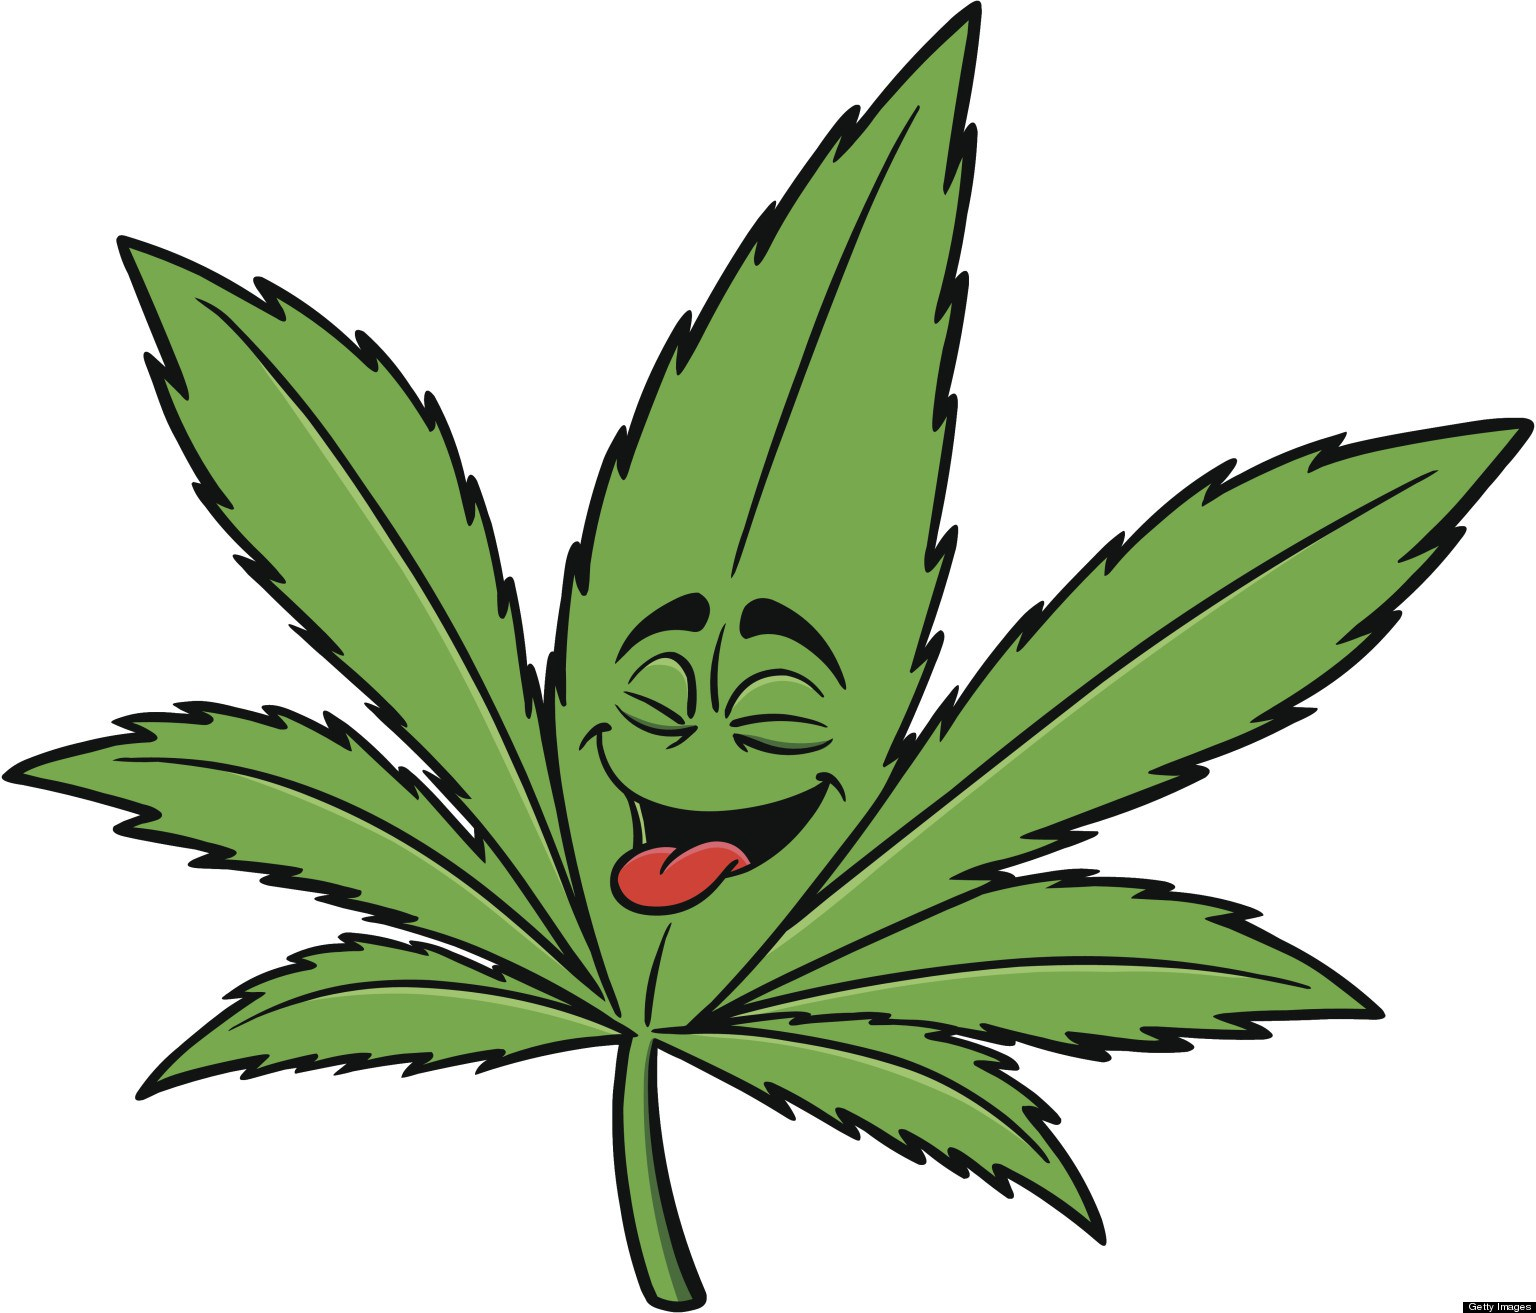 ... Weed Leaf Clip Art - clipartall ...